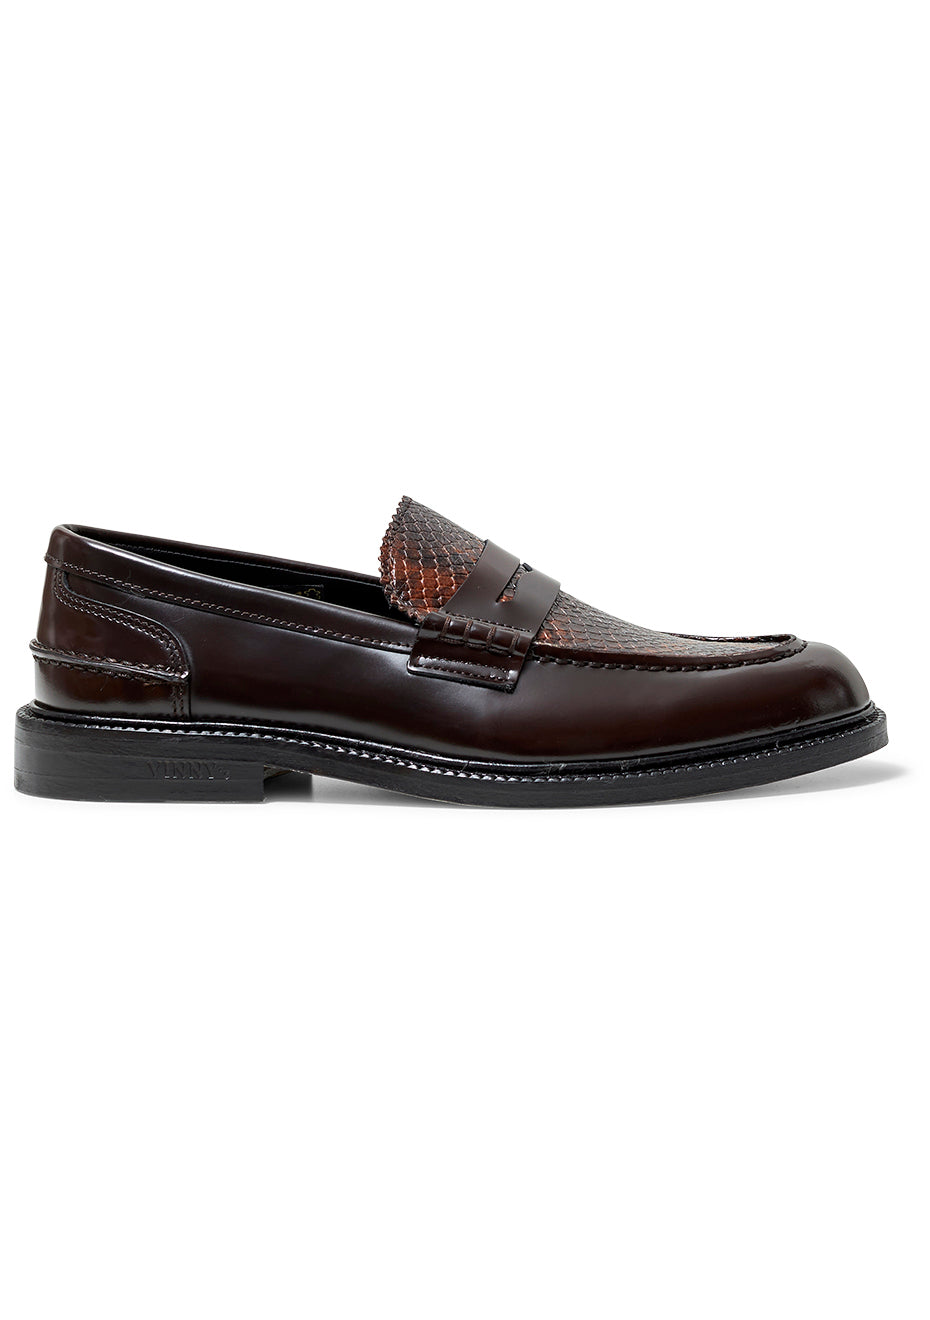 Townee Brown Python Loafer